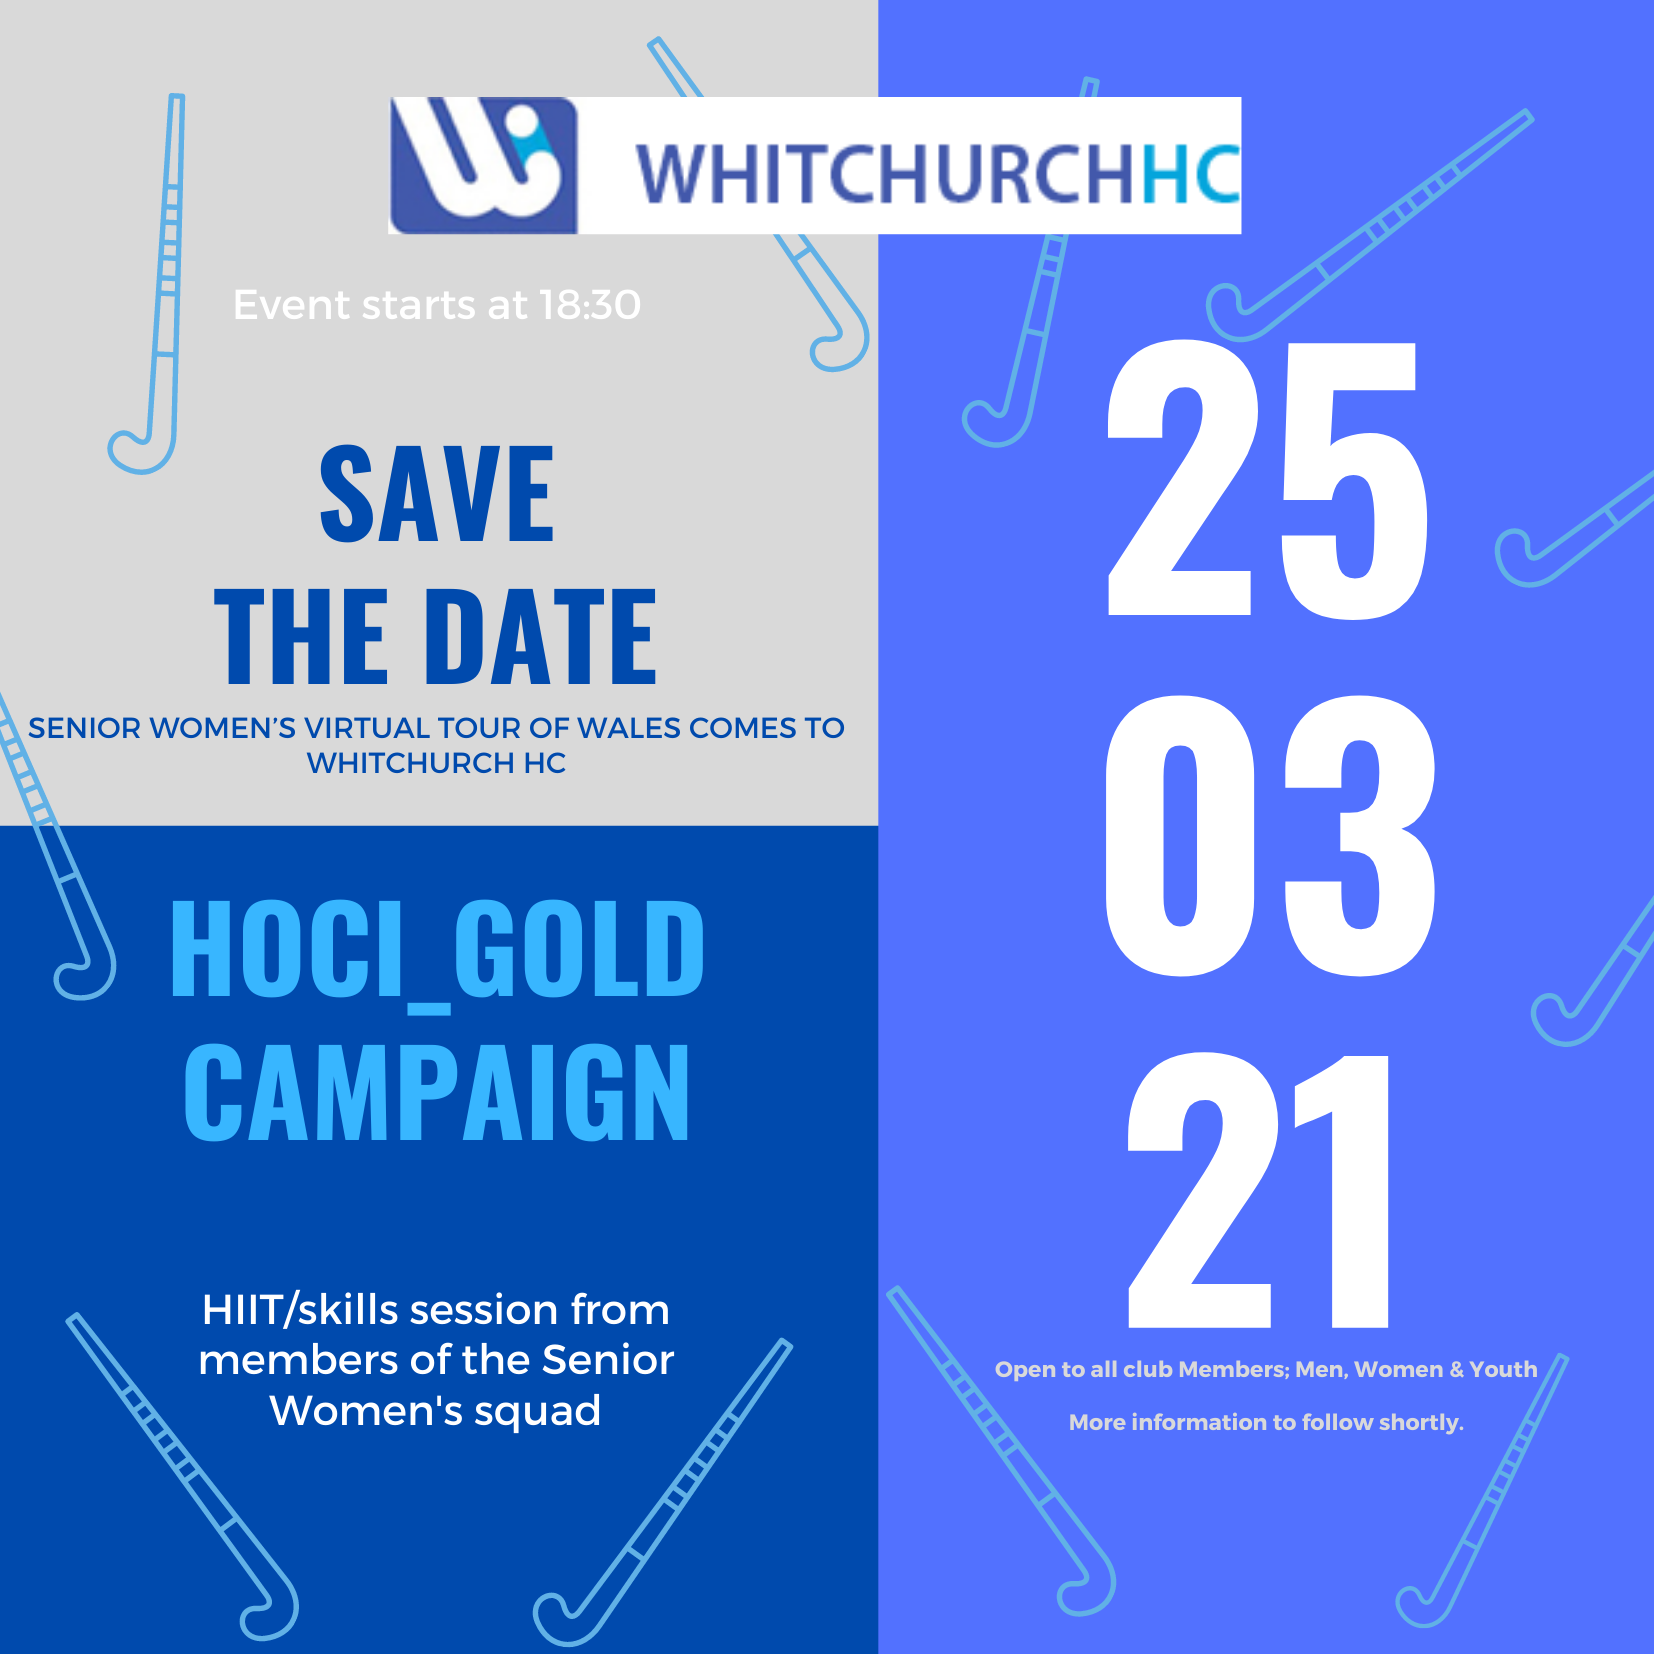 Hoci-Gold Campaign Virtual Tour comes to WHC 25th March 2021